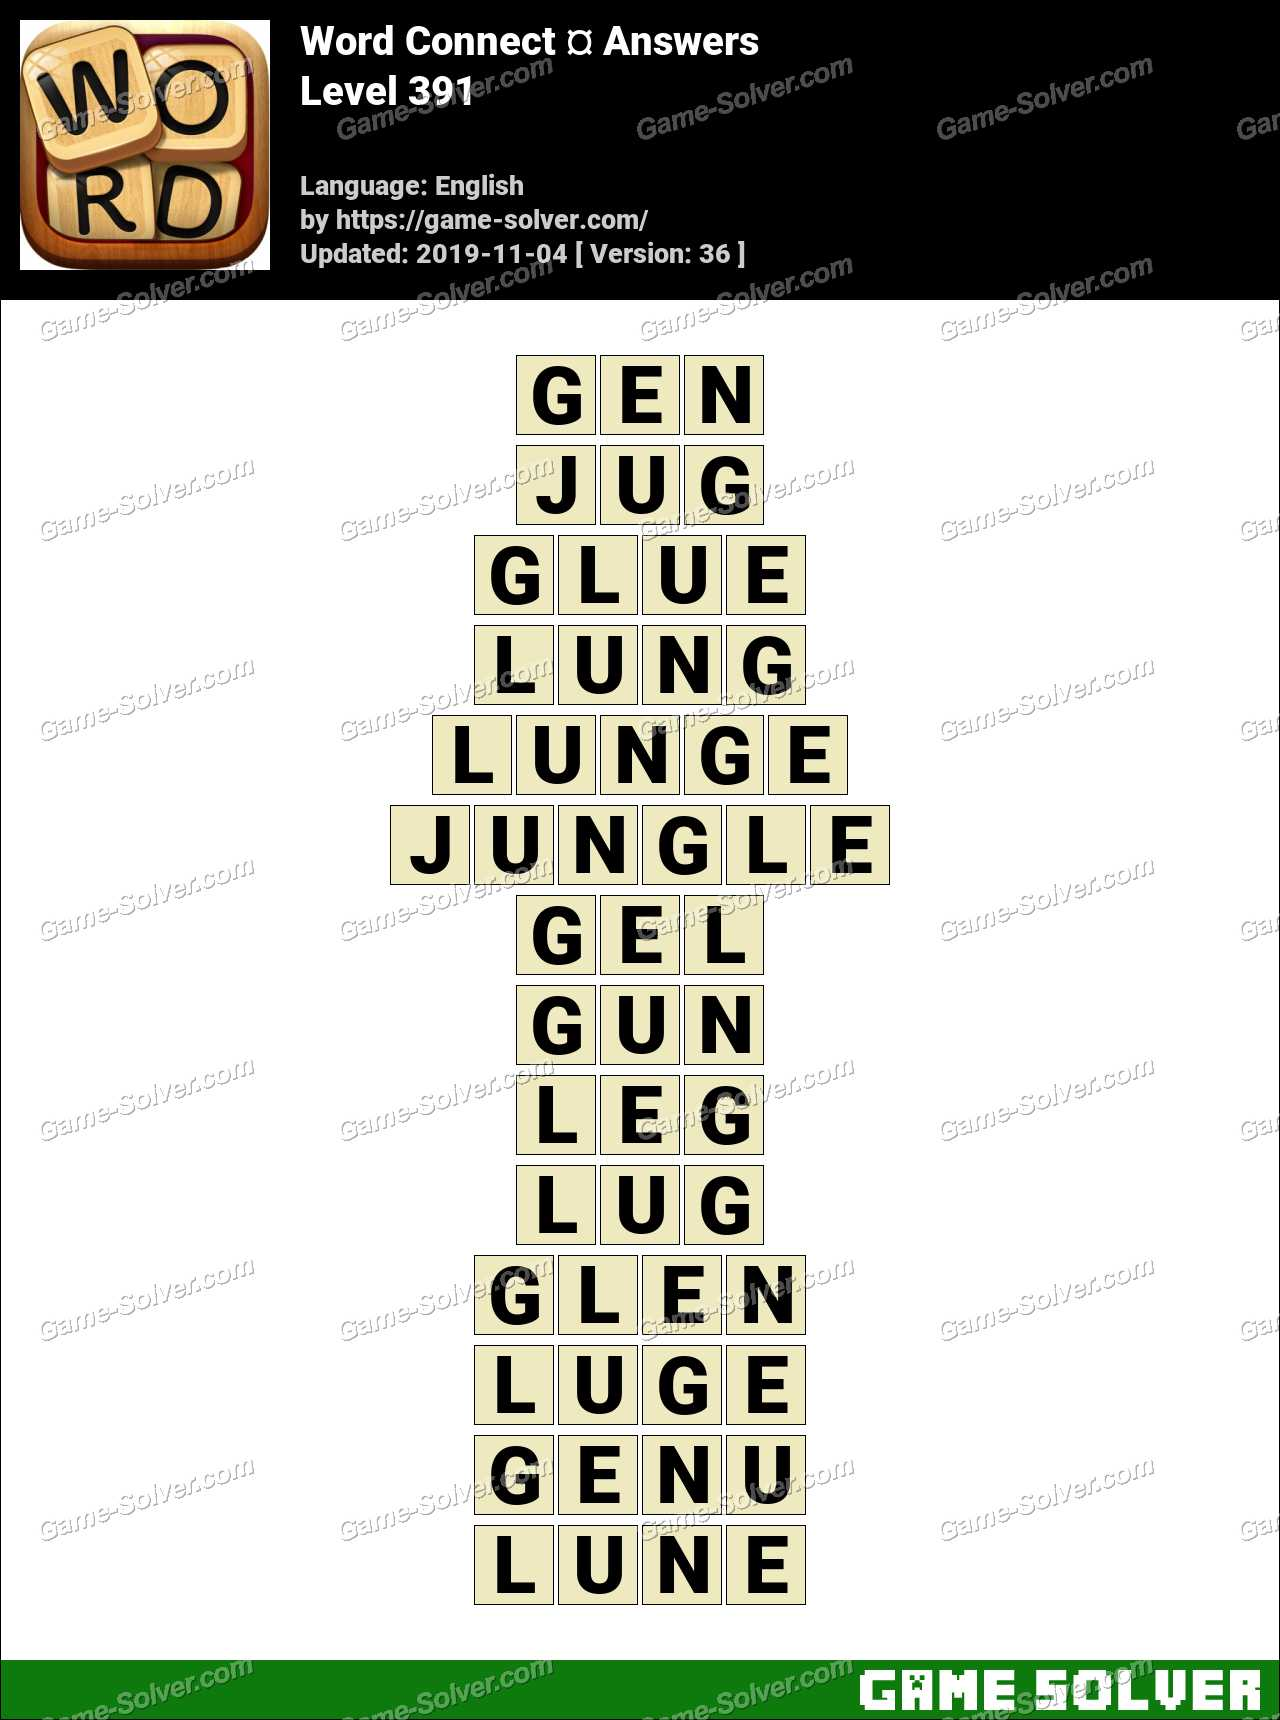 Word Connect Level 391 Answers